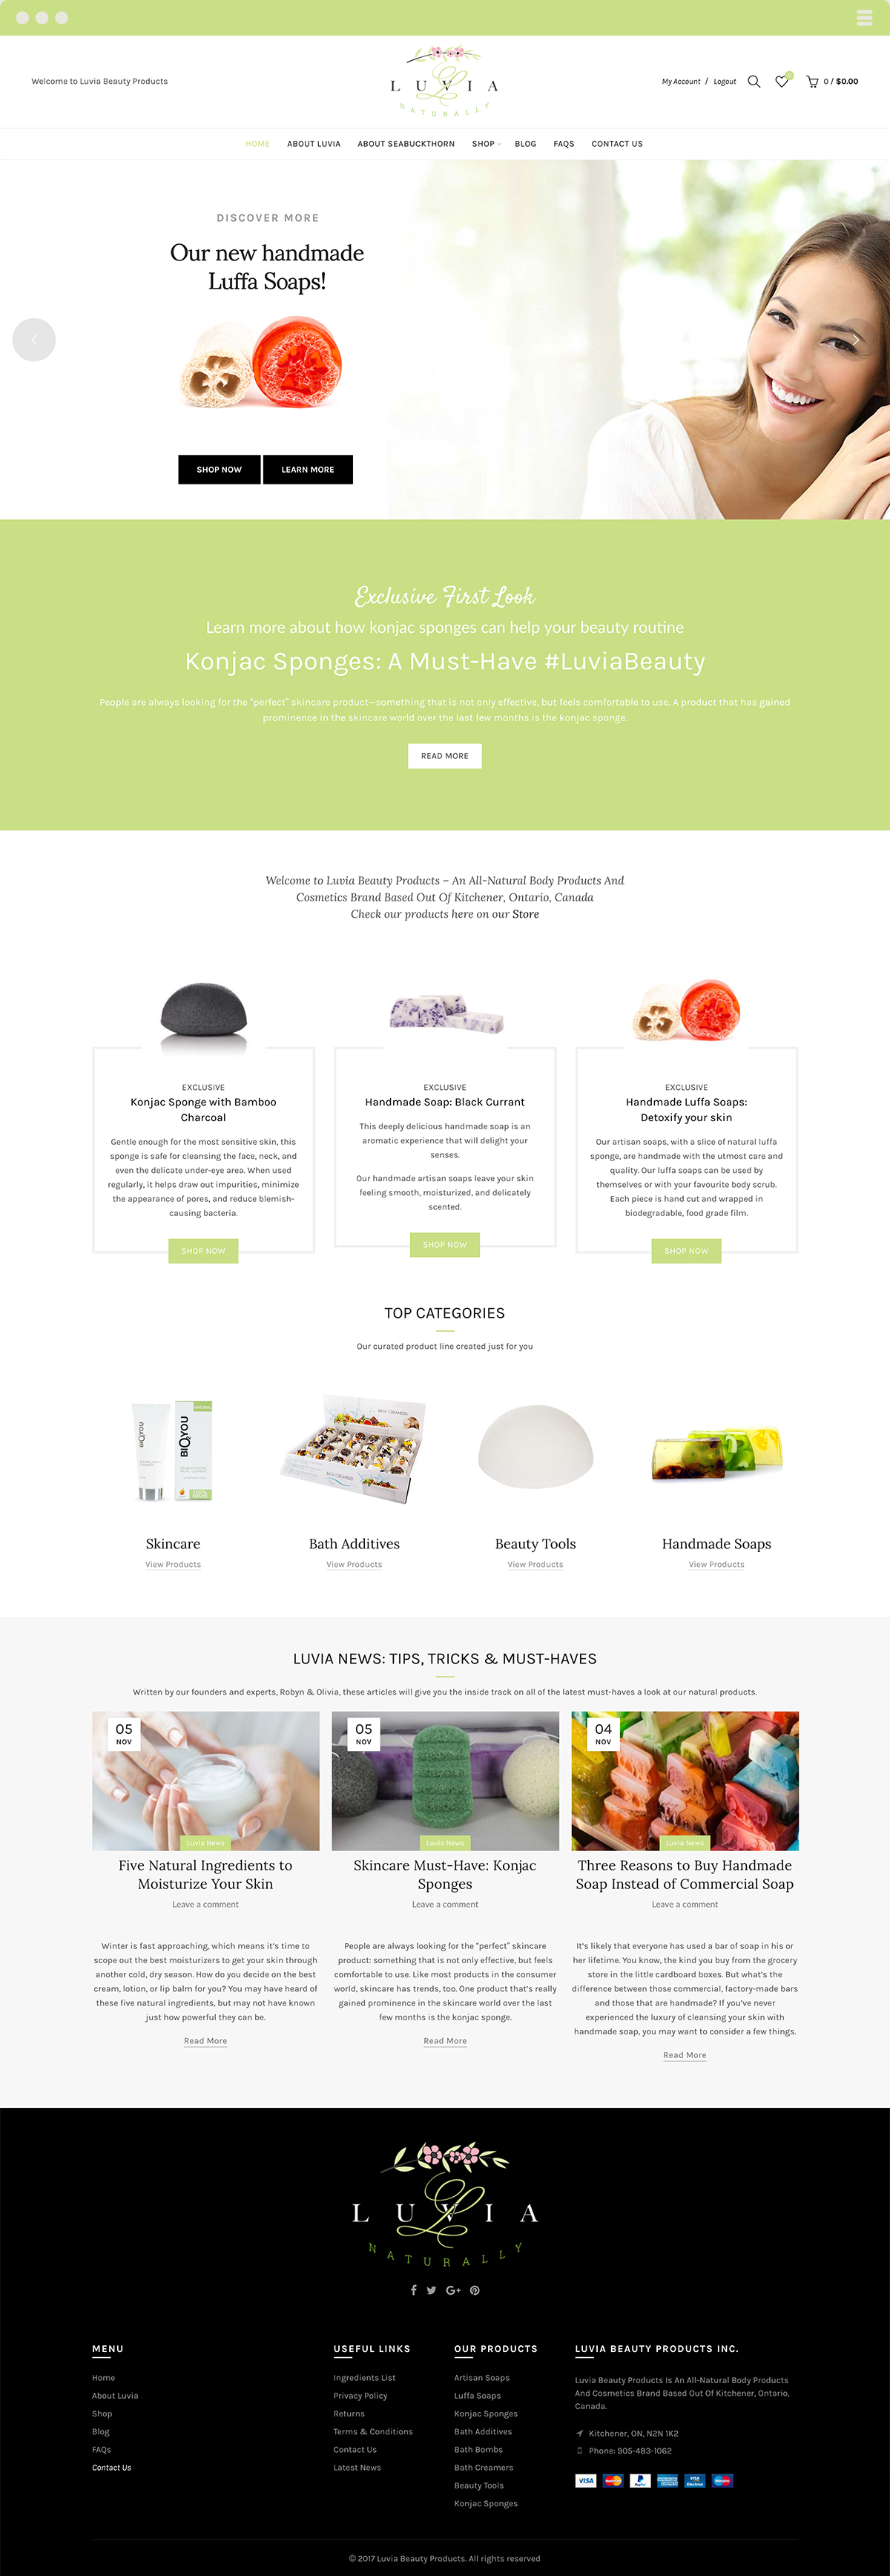 Luvia Beauty Products Website Design & Development by Made By Frame